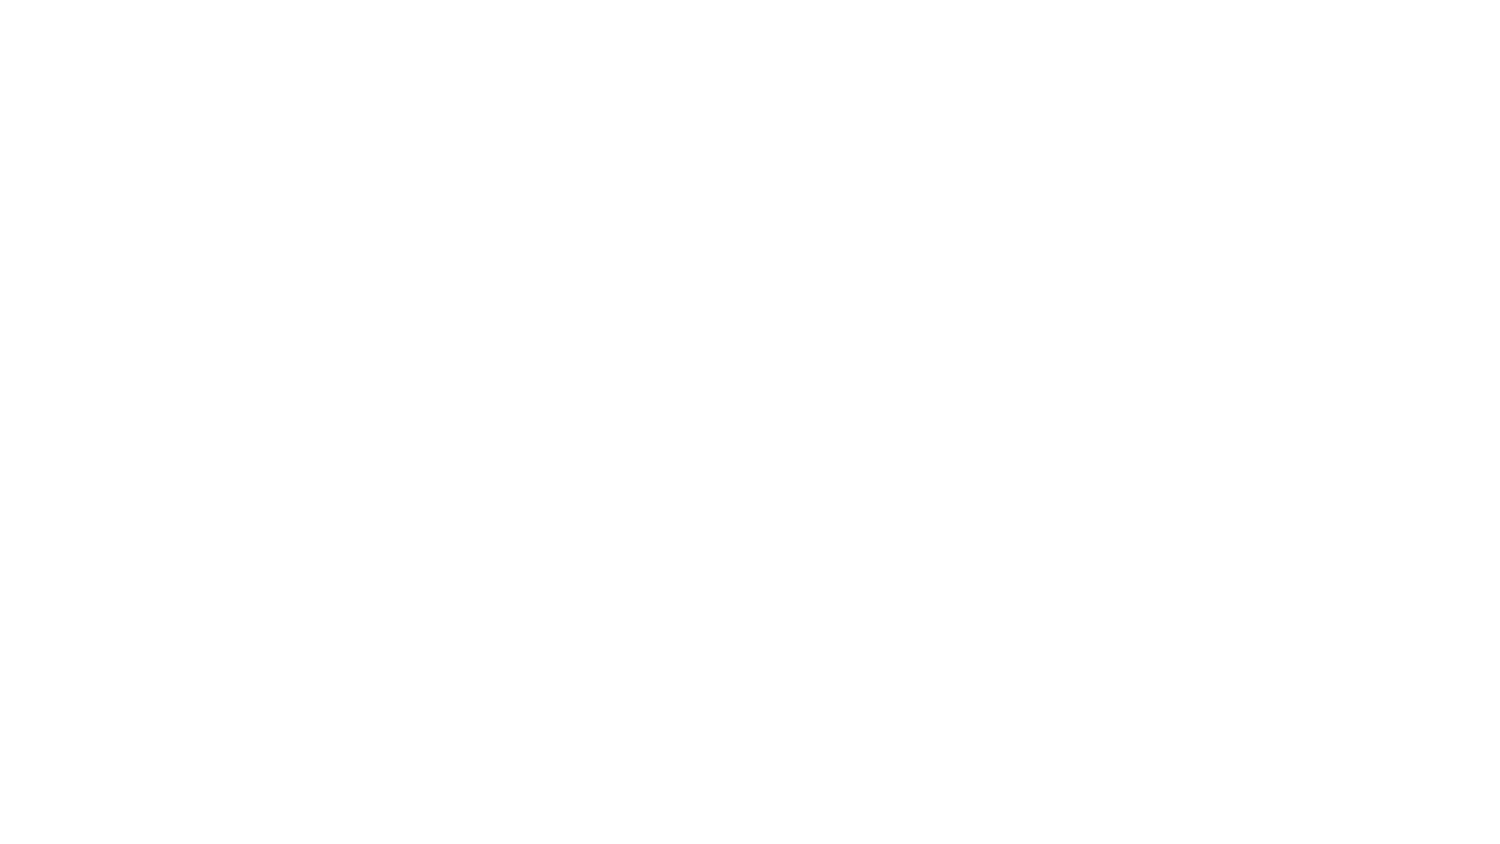 North Shore Cyclery